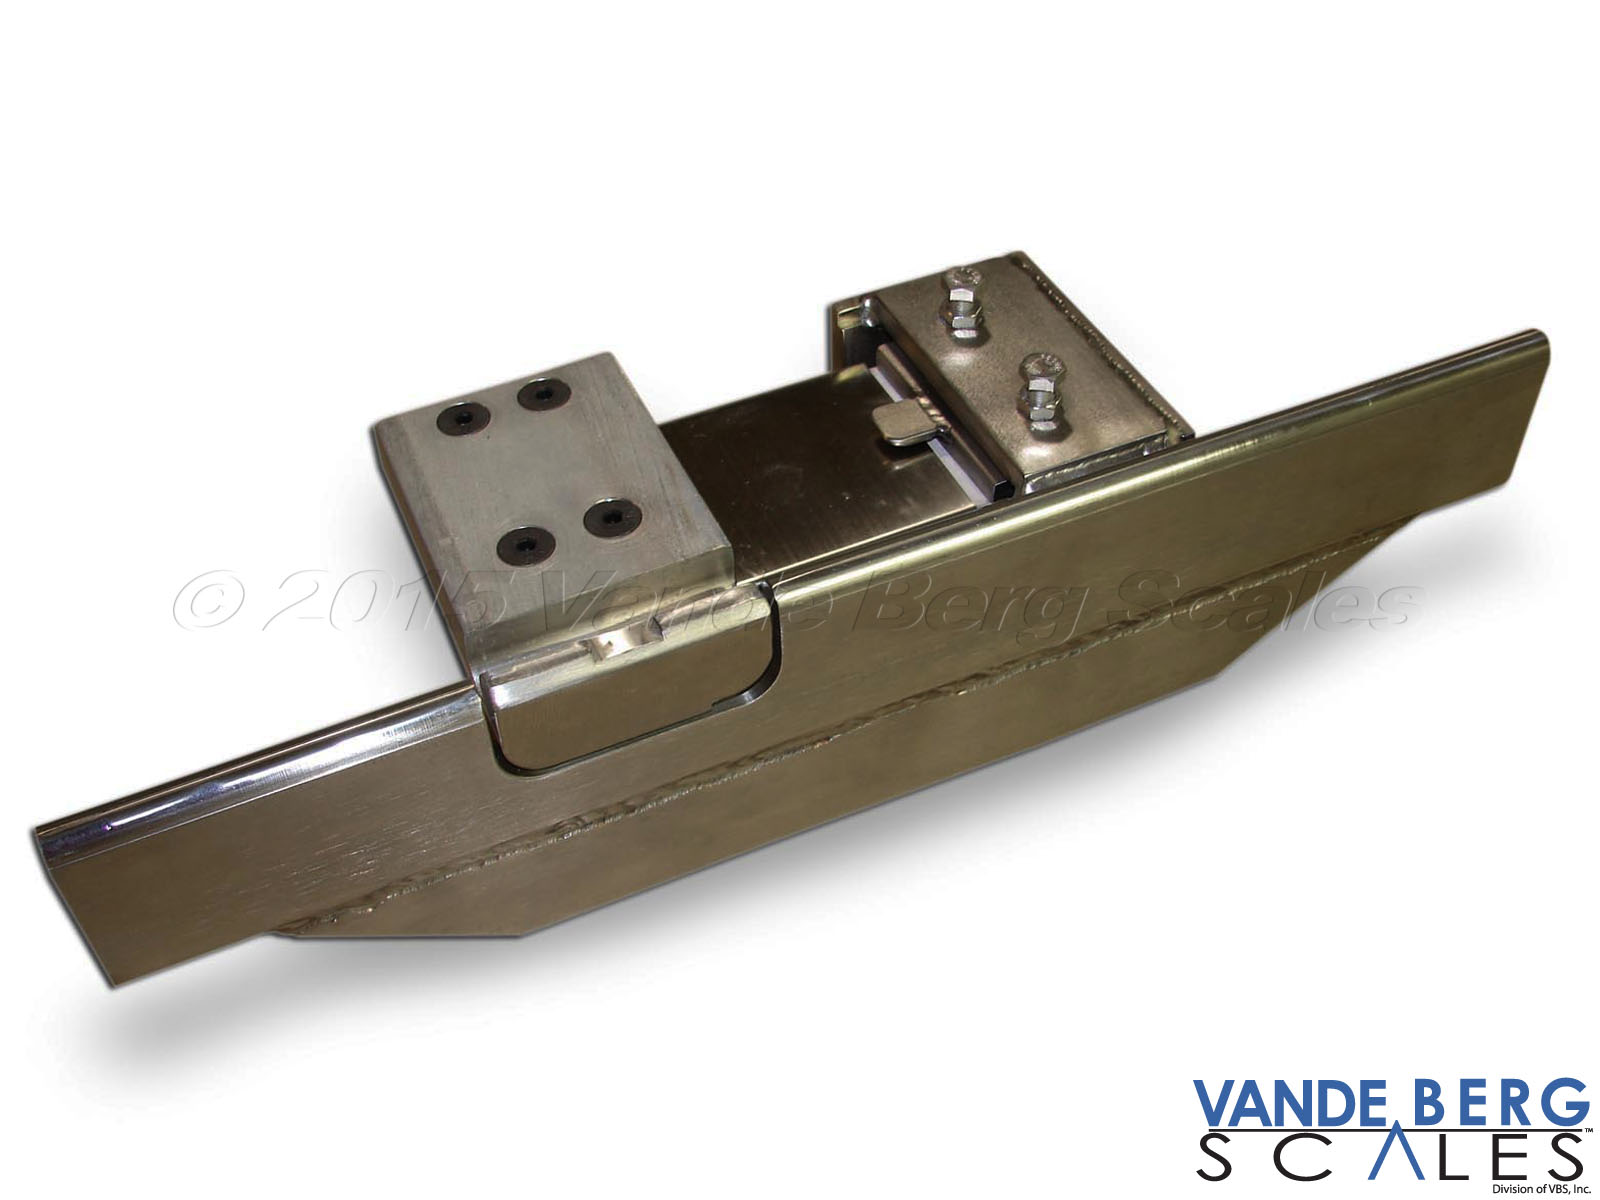 The simplicity of a single load cell single trolley stainless steel static monorail